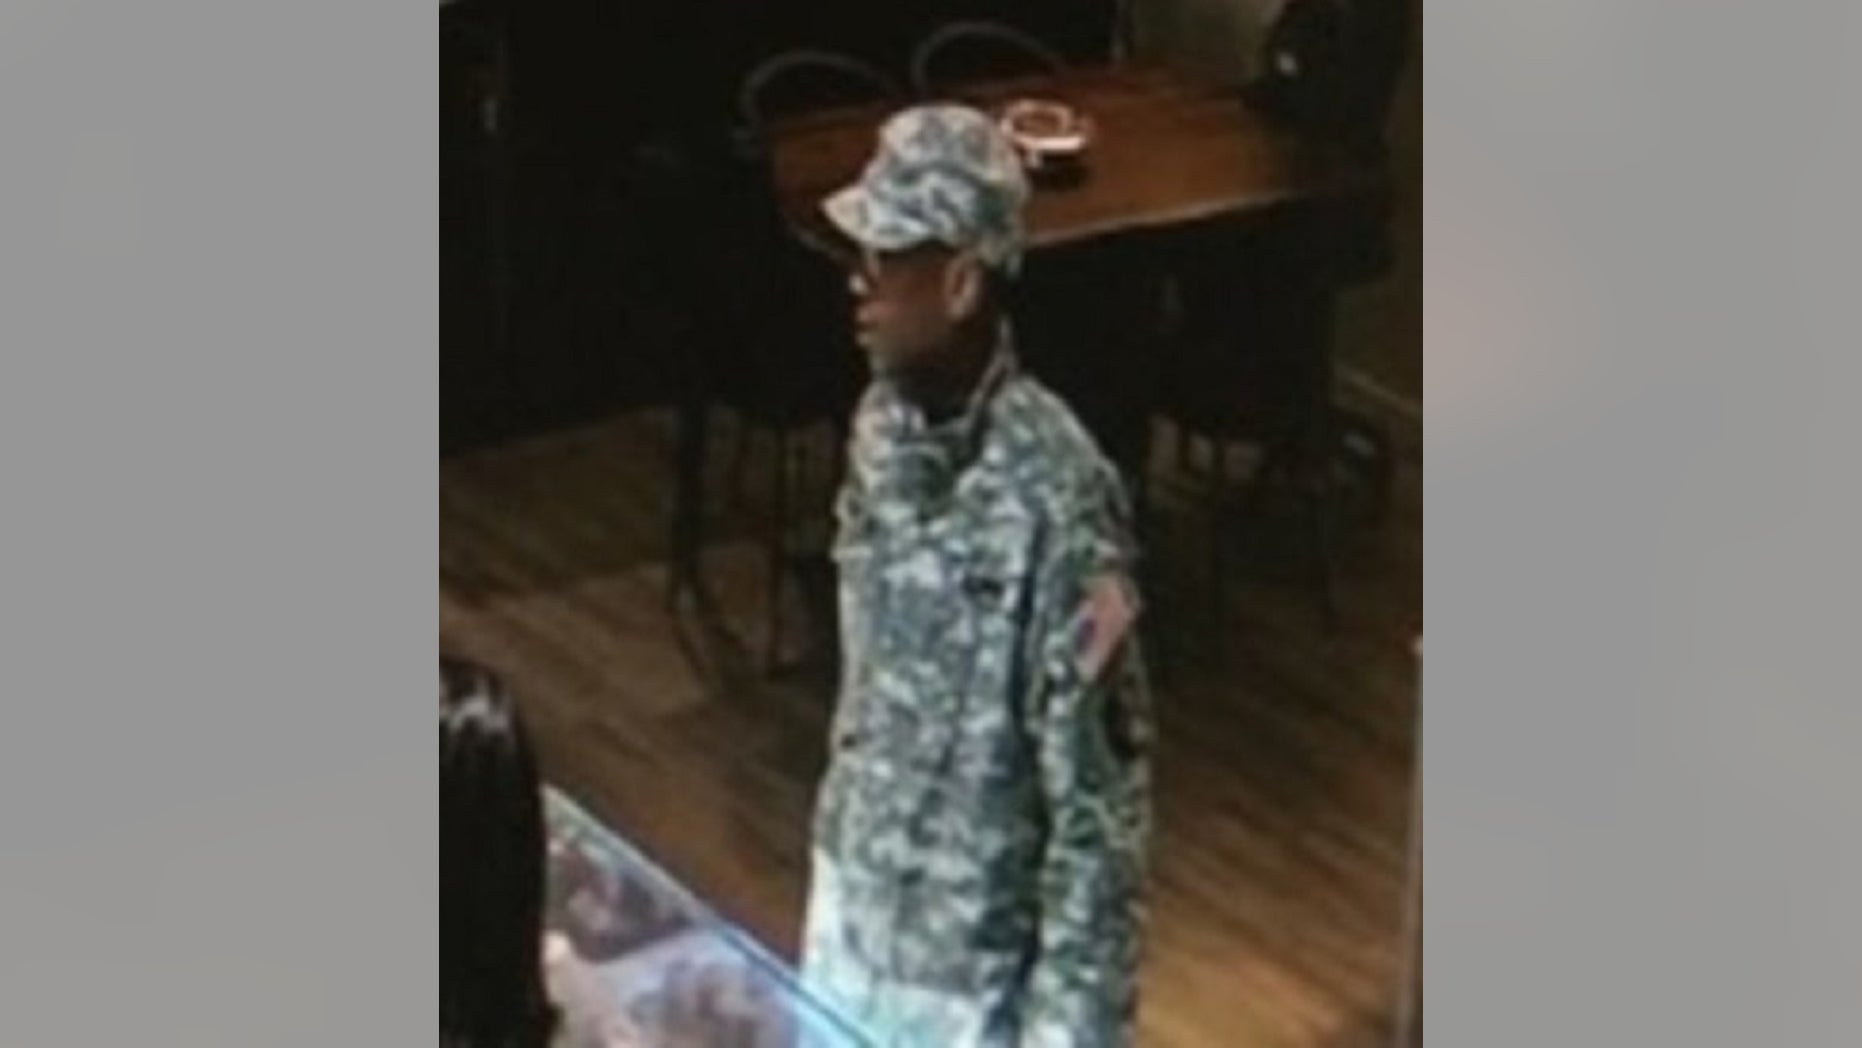 Police released an image of a suspect identified as Arquae Daveon Kennedy, 26. He is accused of impersonating a soldier and stealing a $100,000 marquise diamond on Feb. 22, authorities said Wednesday.